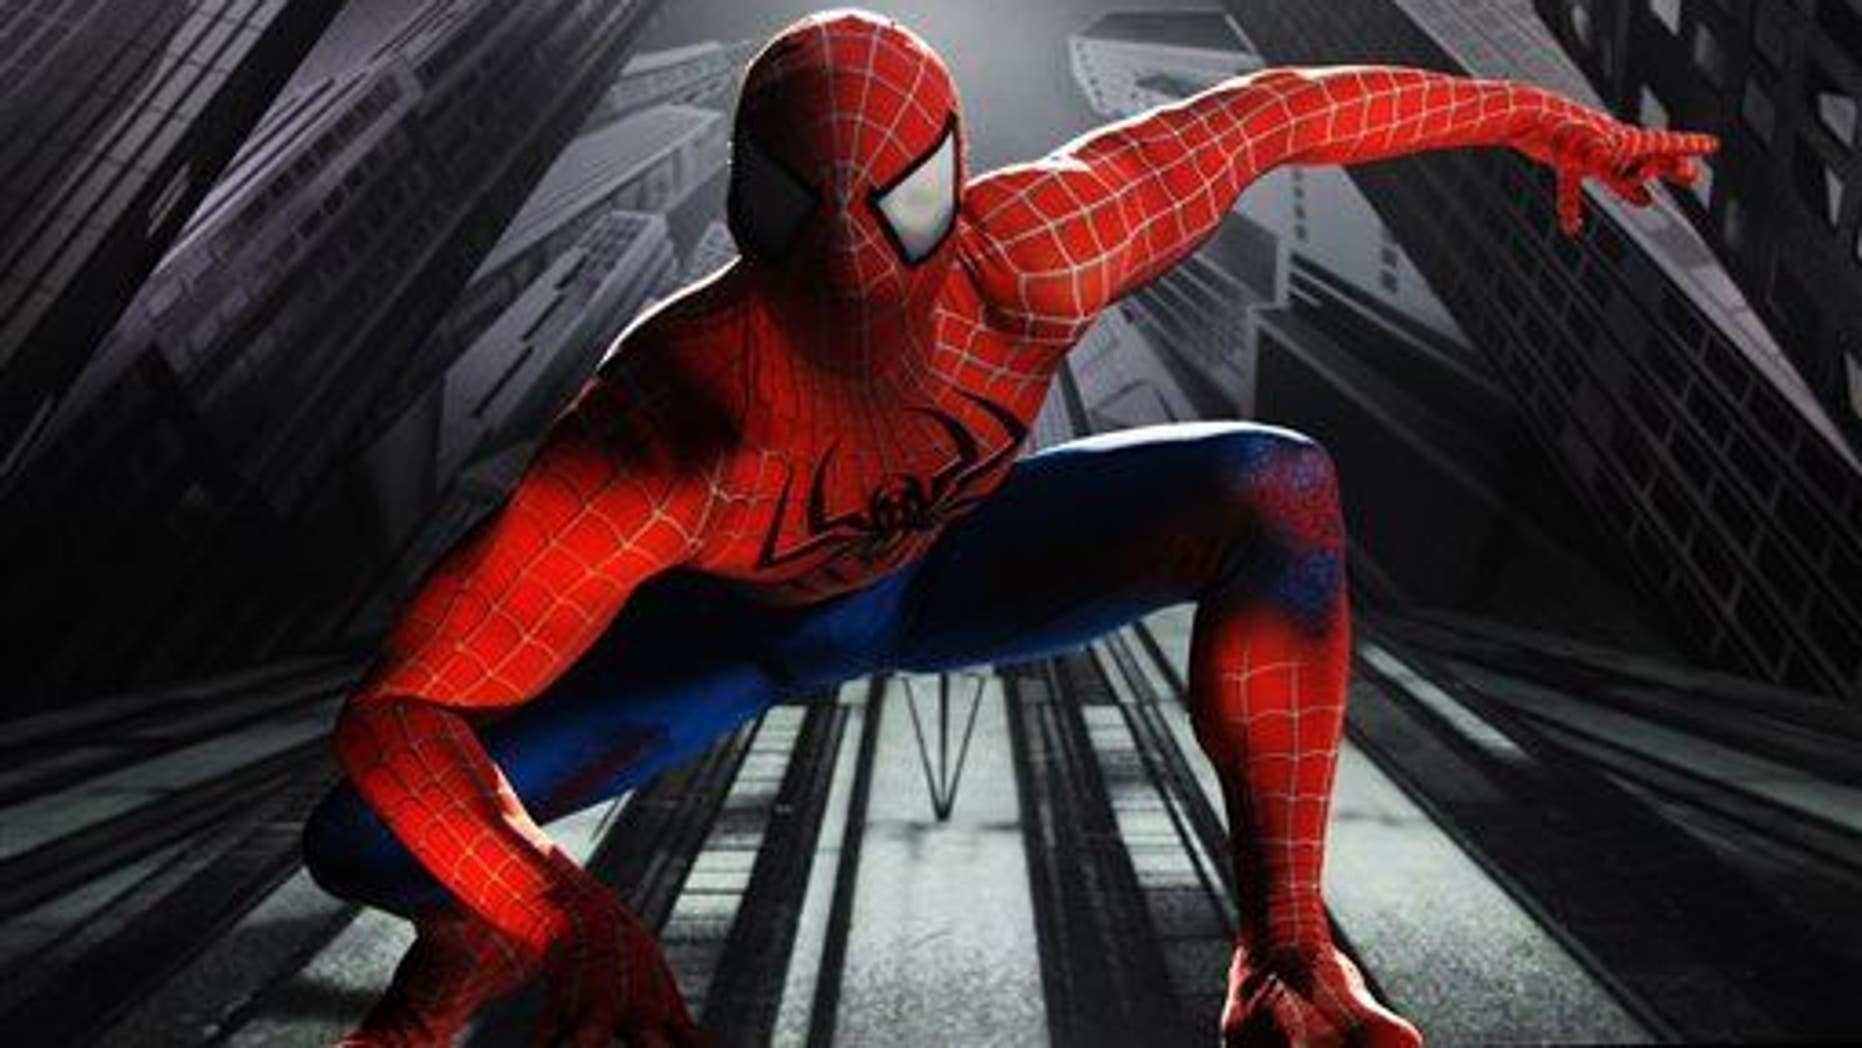 """Reads the obit, """"Civilians will recognize him best as Spider-Man, and thank him for his many years of service protecting our city."""""""